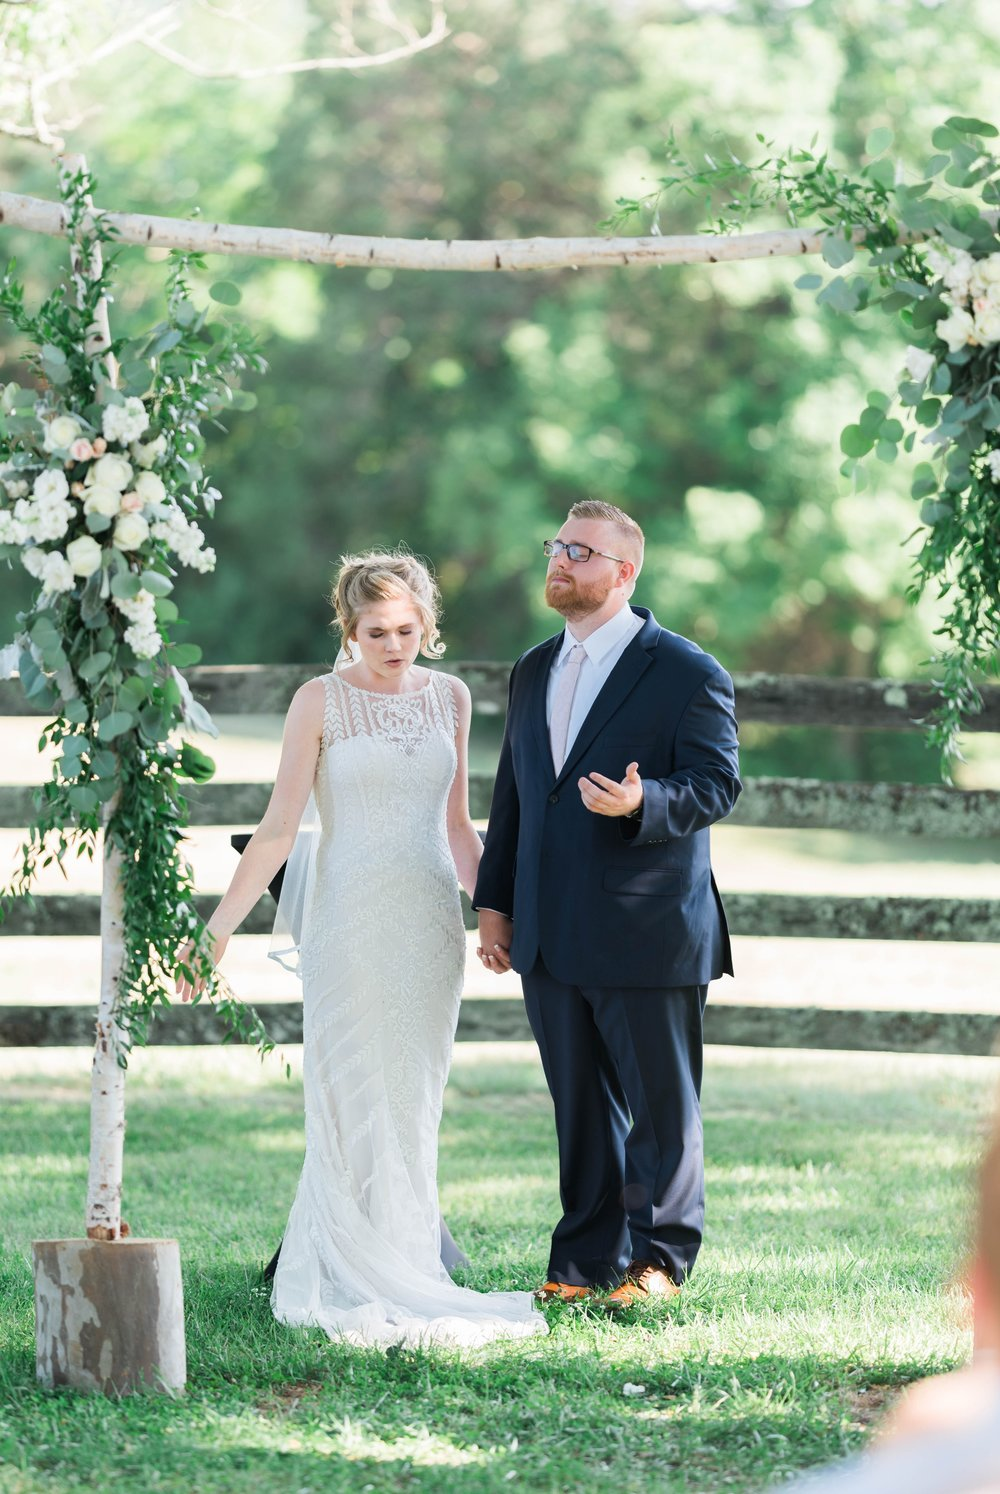 SorellaFarms_VirginiaWeddingPhotographer_BarnWedding_Lynchburgweddingphotographer_DanielleTyler 49.jpg